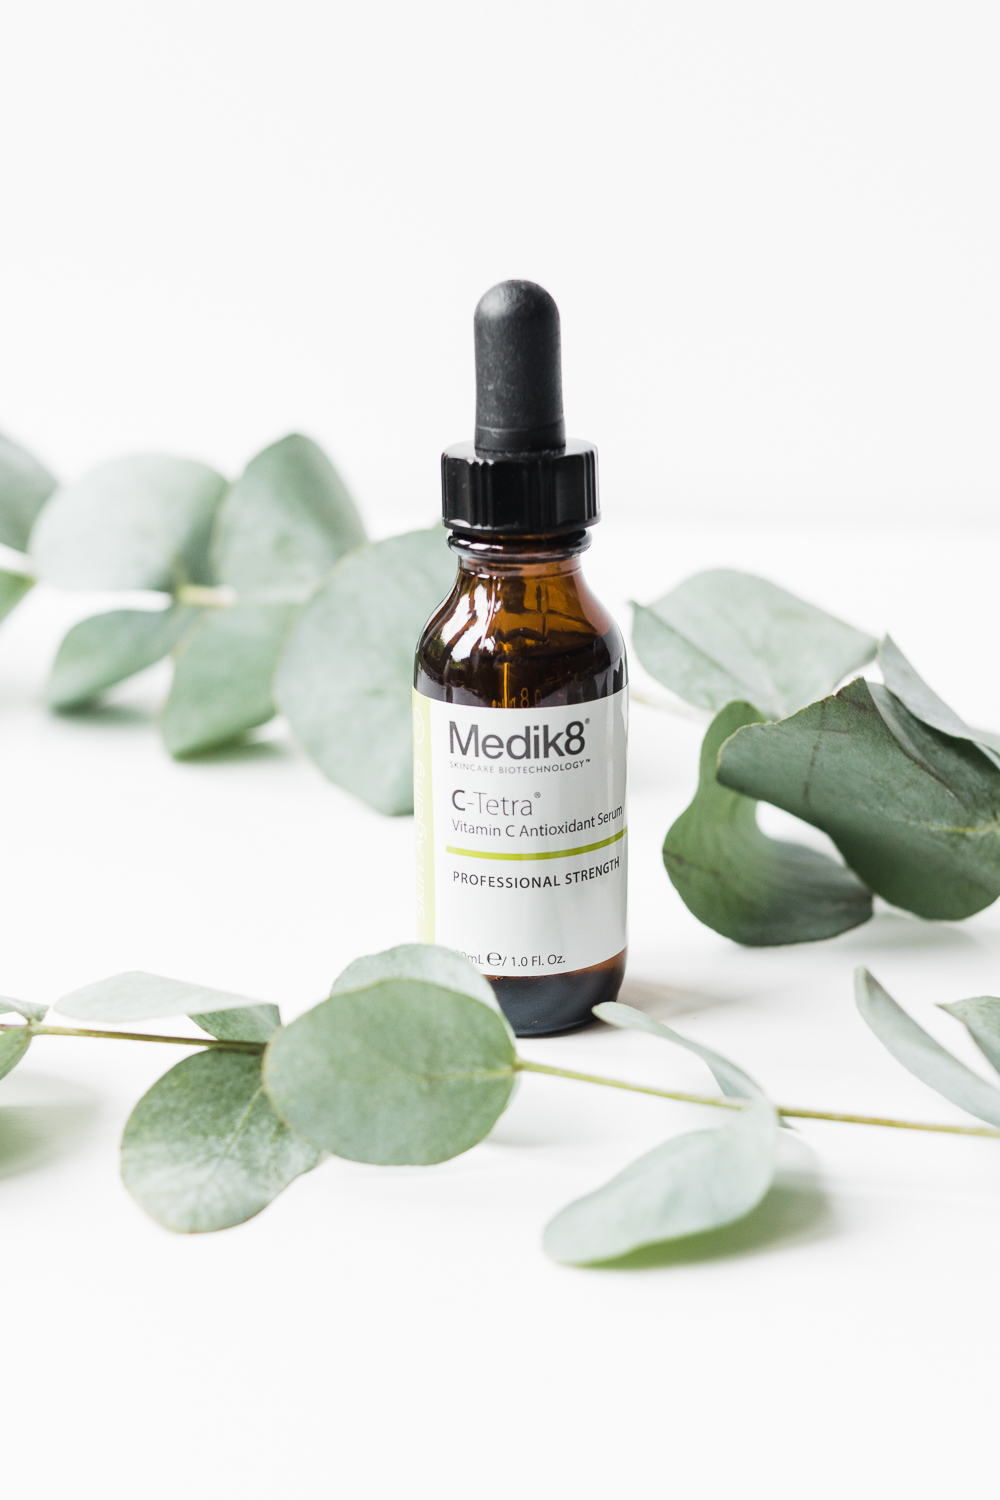 Medik8-vitamin-c-serum-review-Barely-there-beauty-blog-photography